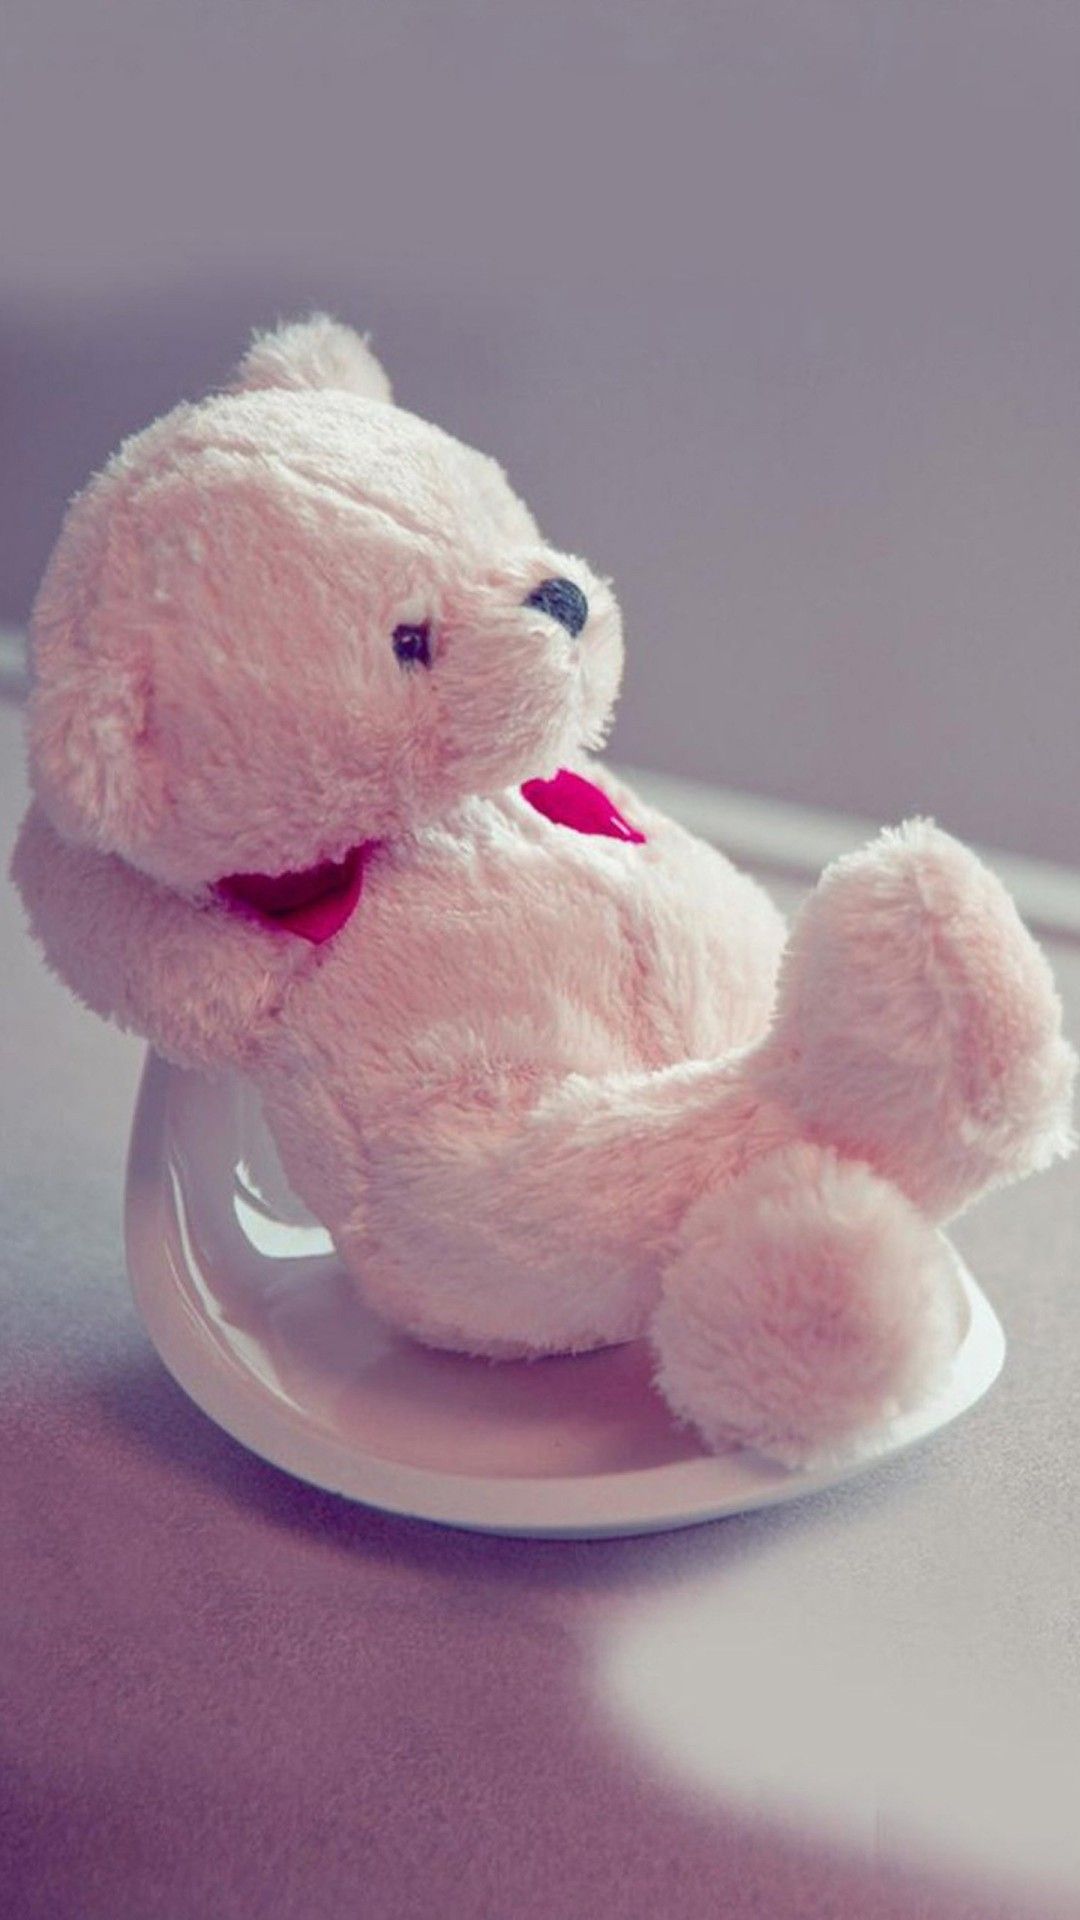 Cute hd wallpapers for google pixel wallpapers a cute teddy bear voltagebd Choice Image